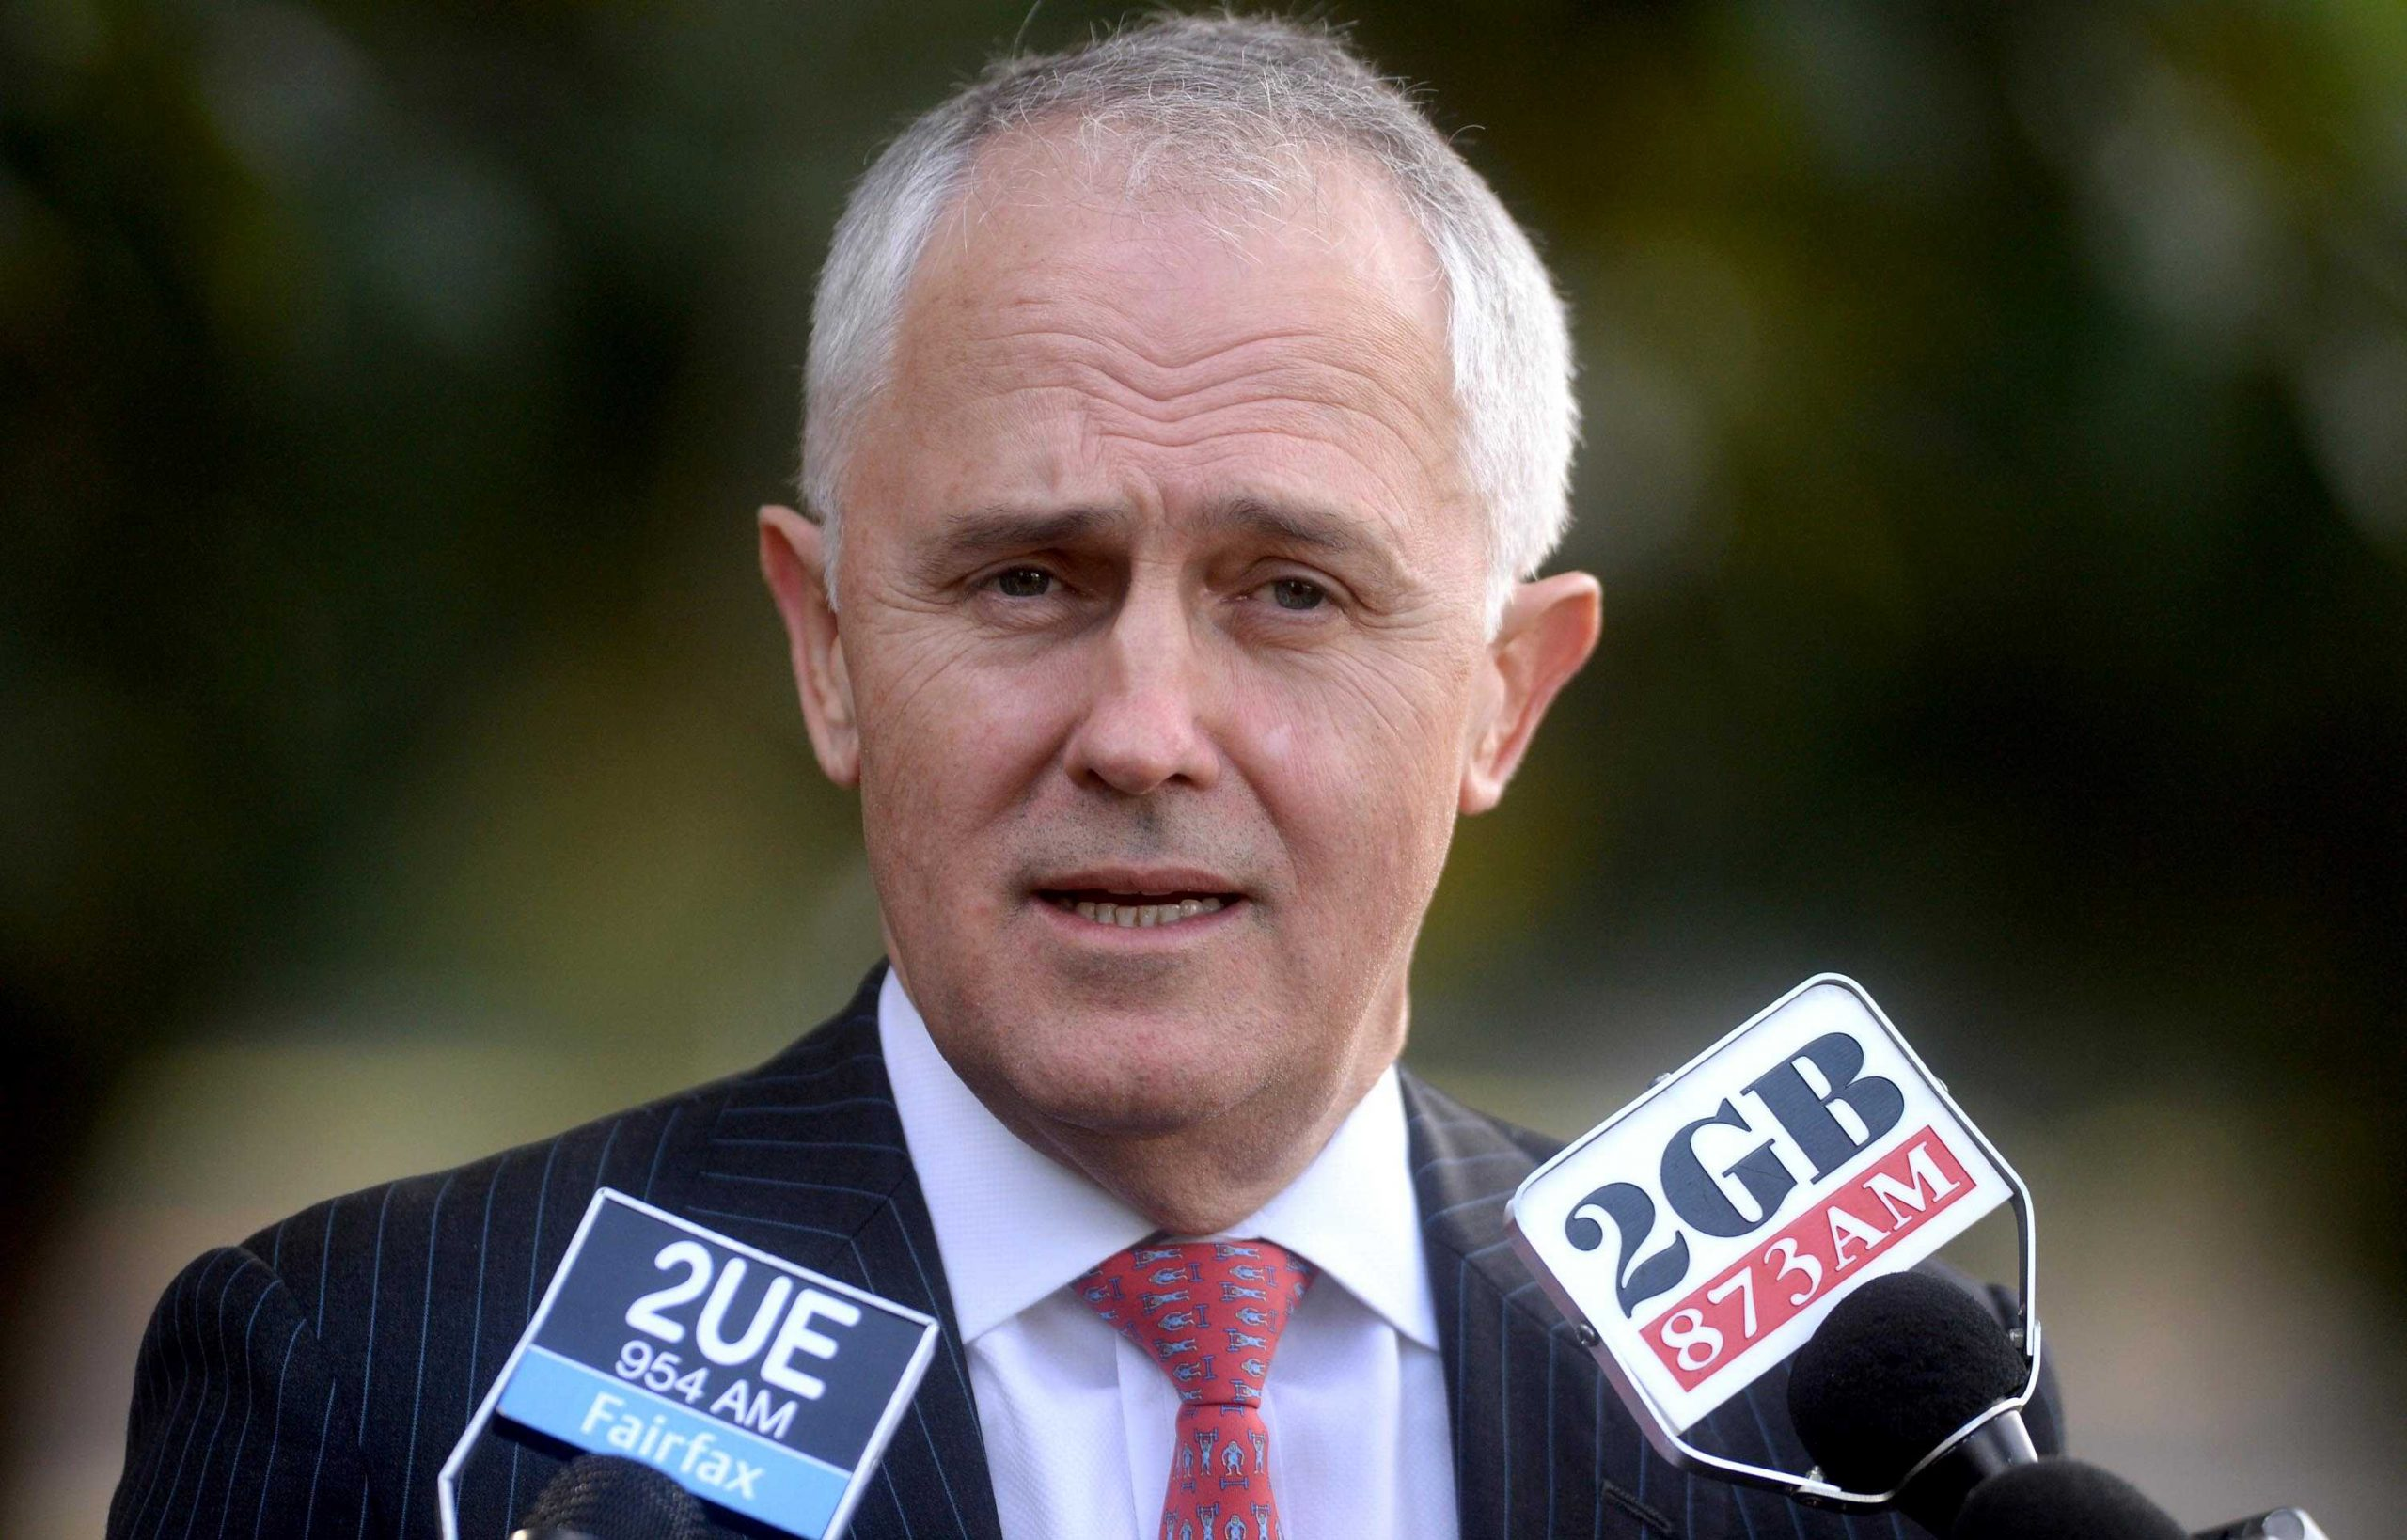 Malcolm Turnbull Shows the Way